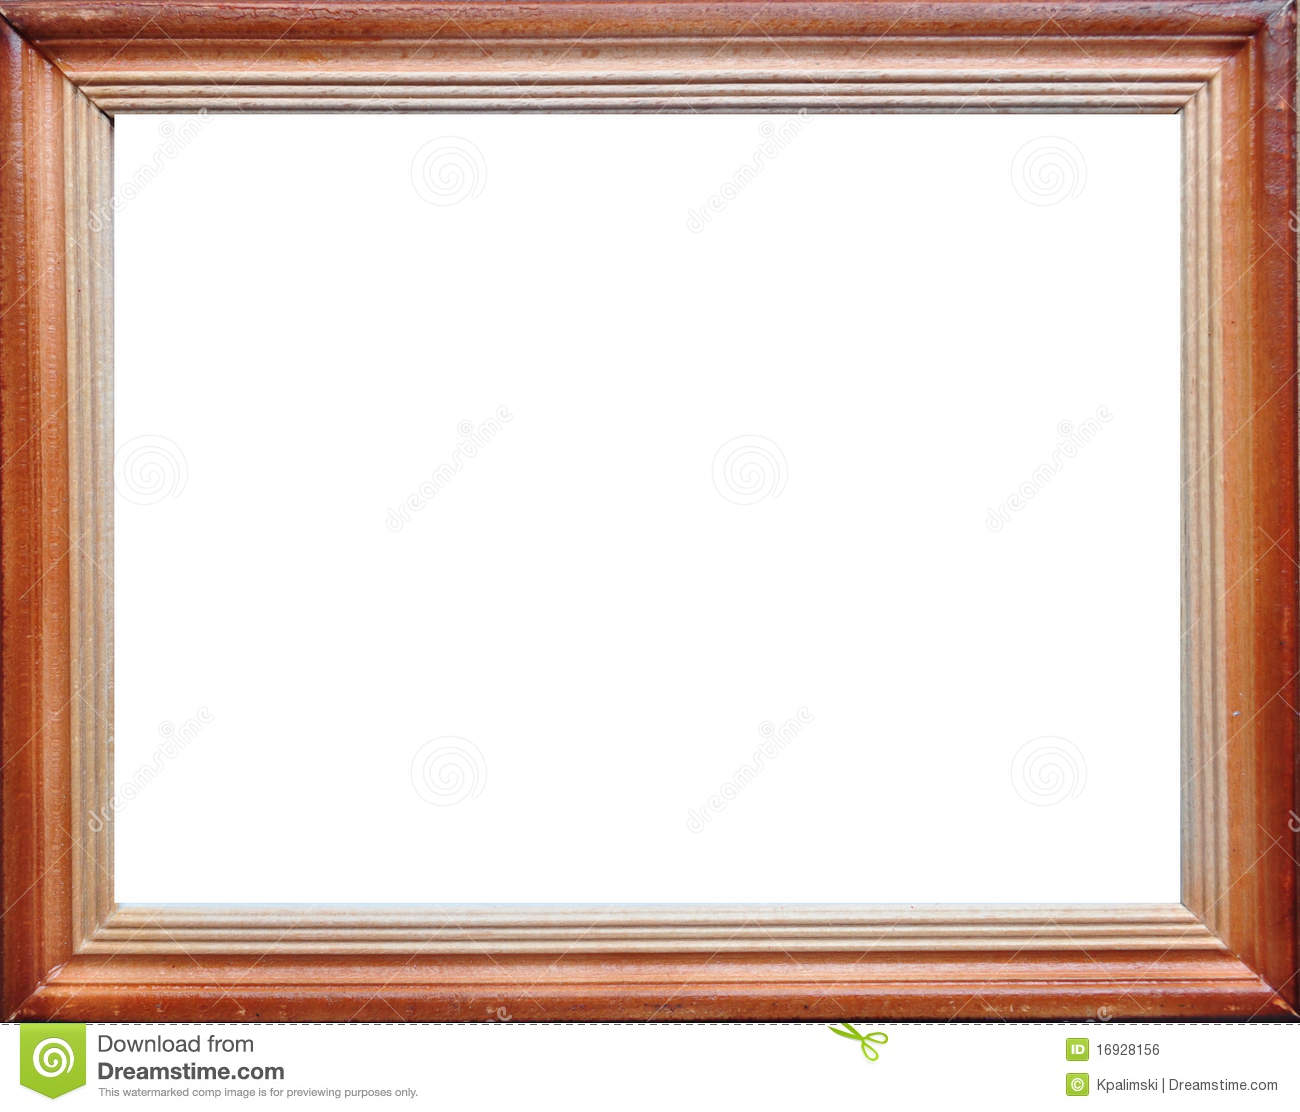 Wood Empty Frame Border Royalty Free Stock Image  Image: 16928156